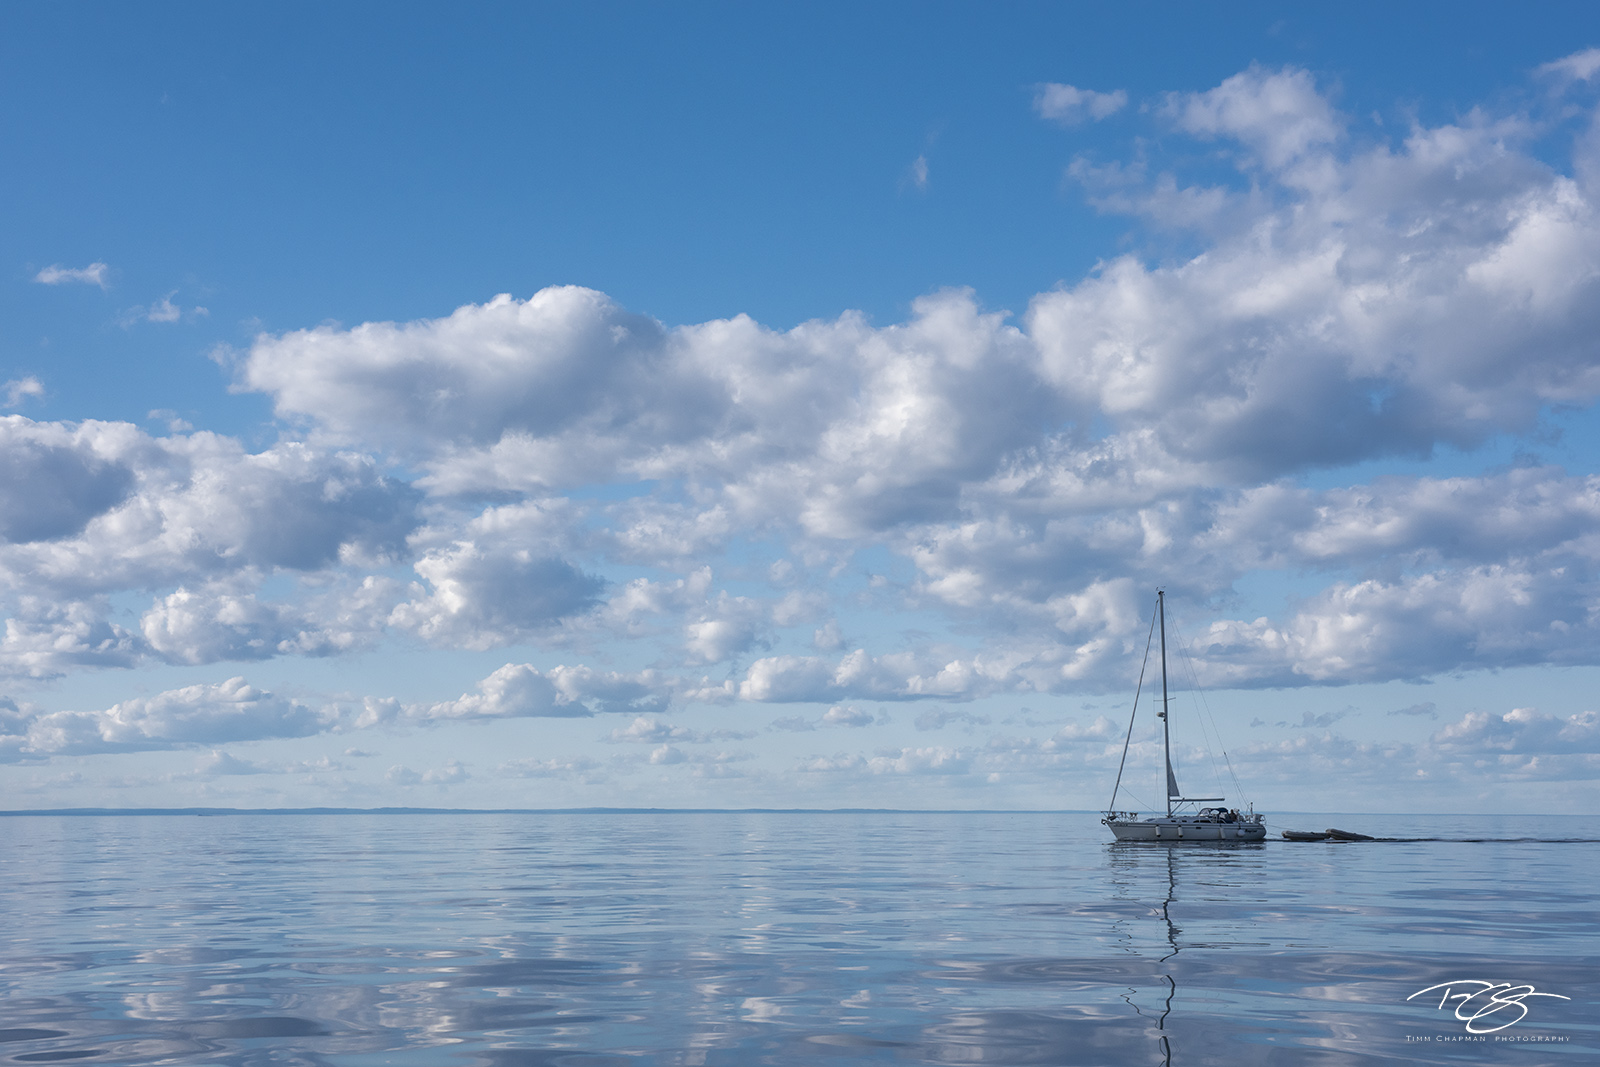 lake superior, lake huron, lake michigan, great lakes, sailing, sailboat, boat, ship, yacht, vessel, schooner, clouds, sea, ocean, reflection, in tow, clipper, photo